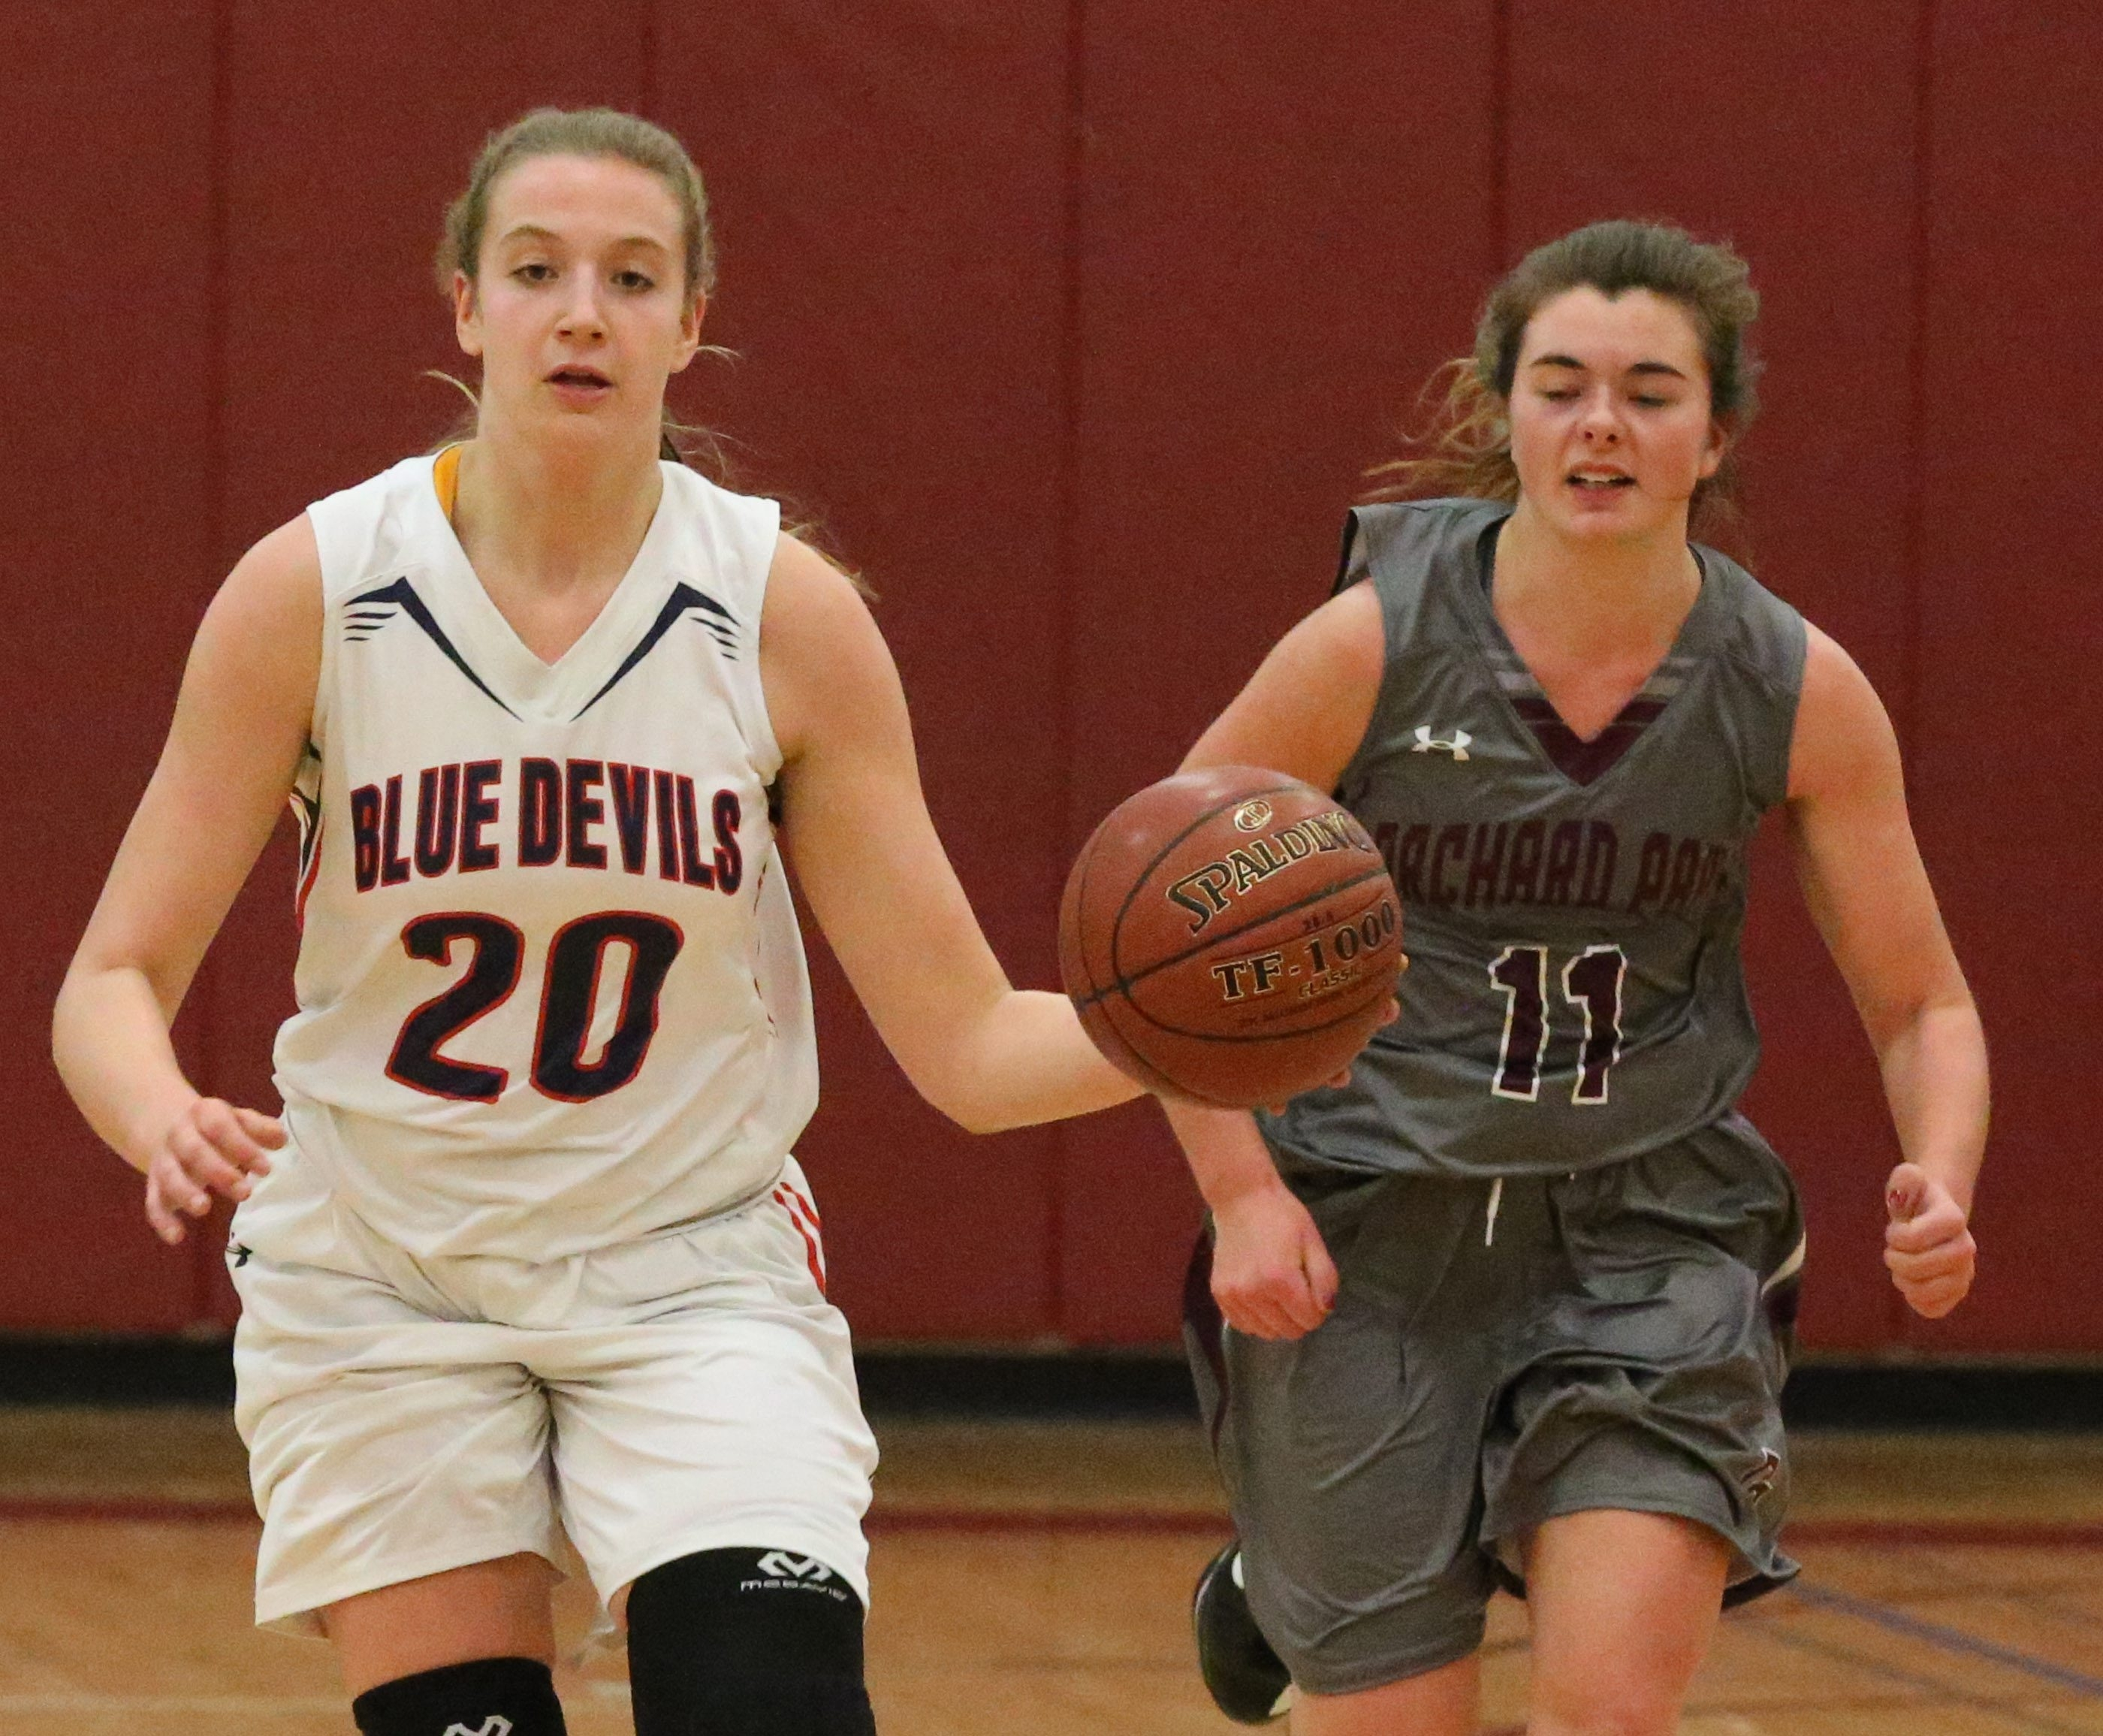 East Aurora's Emma Brinker dribbles the ball up court for the Blue Devils. She earned MVP honors while helping East Aurora win the Orchard Park Tournament on Wednesday.